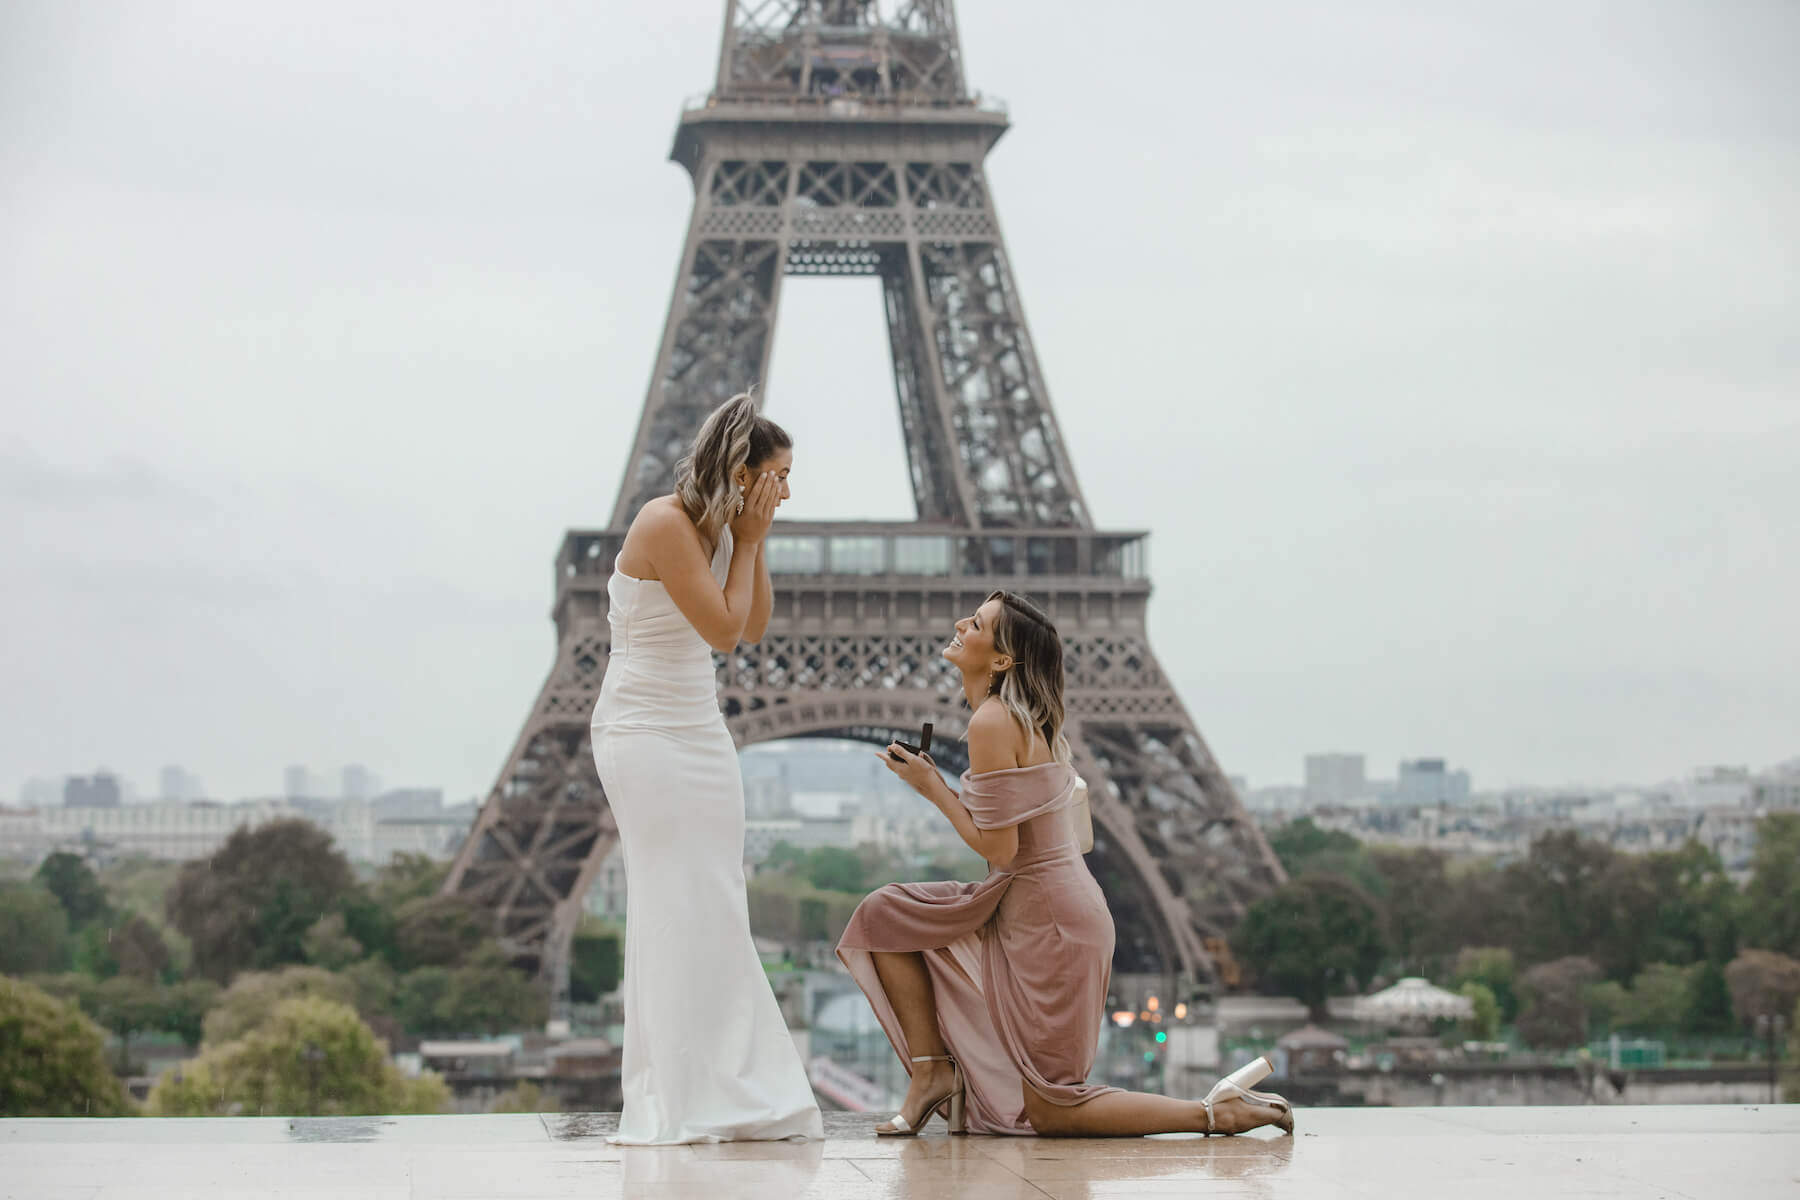 LGBTQ couple in front of the Eiffel tower and one of the women is proposing to the other woman.